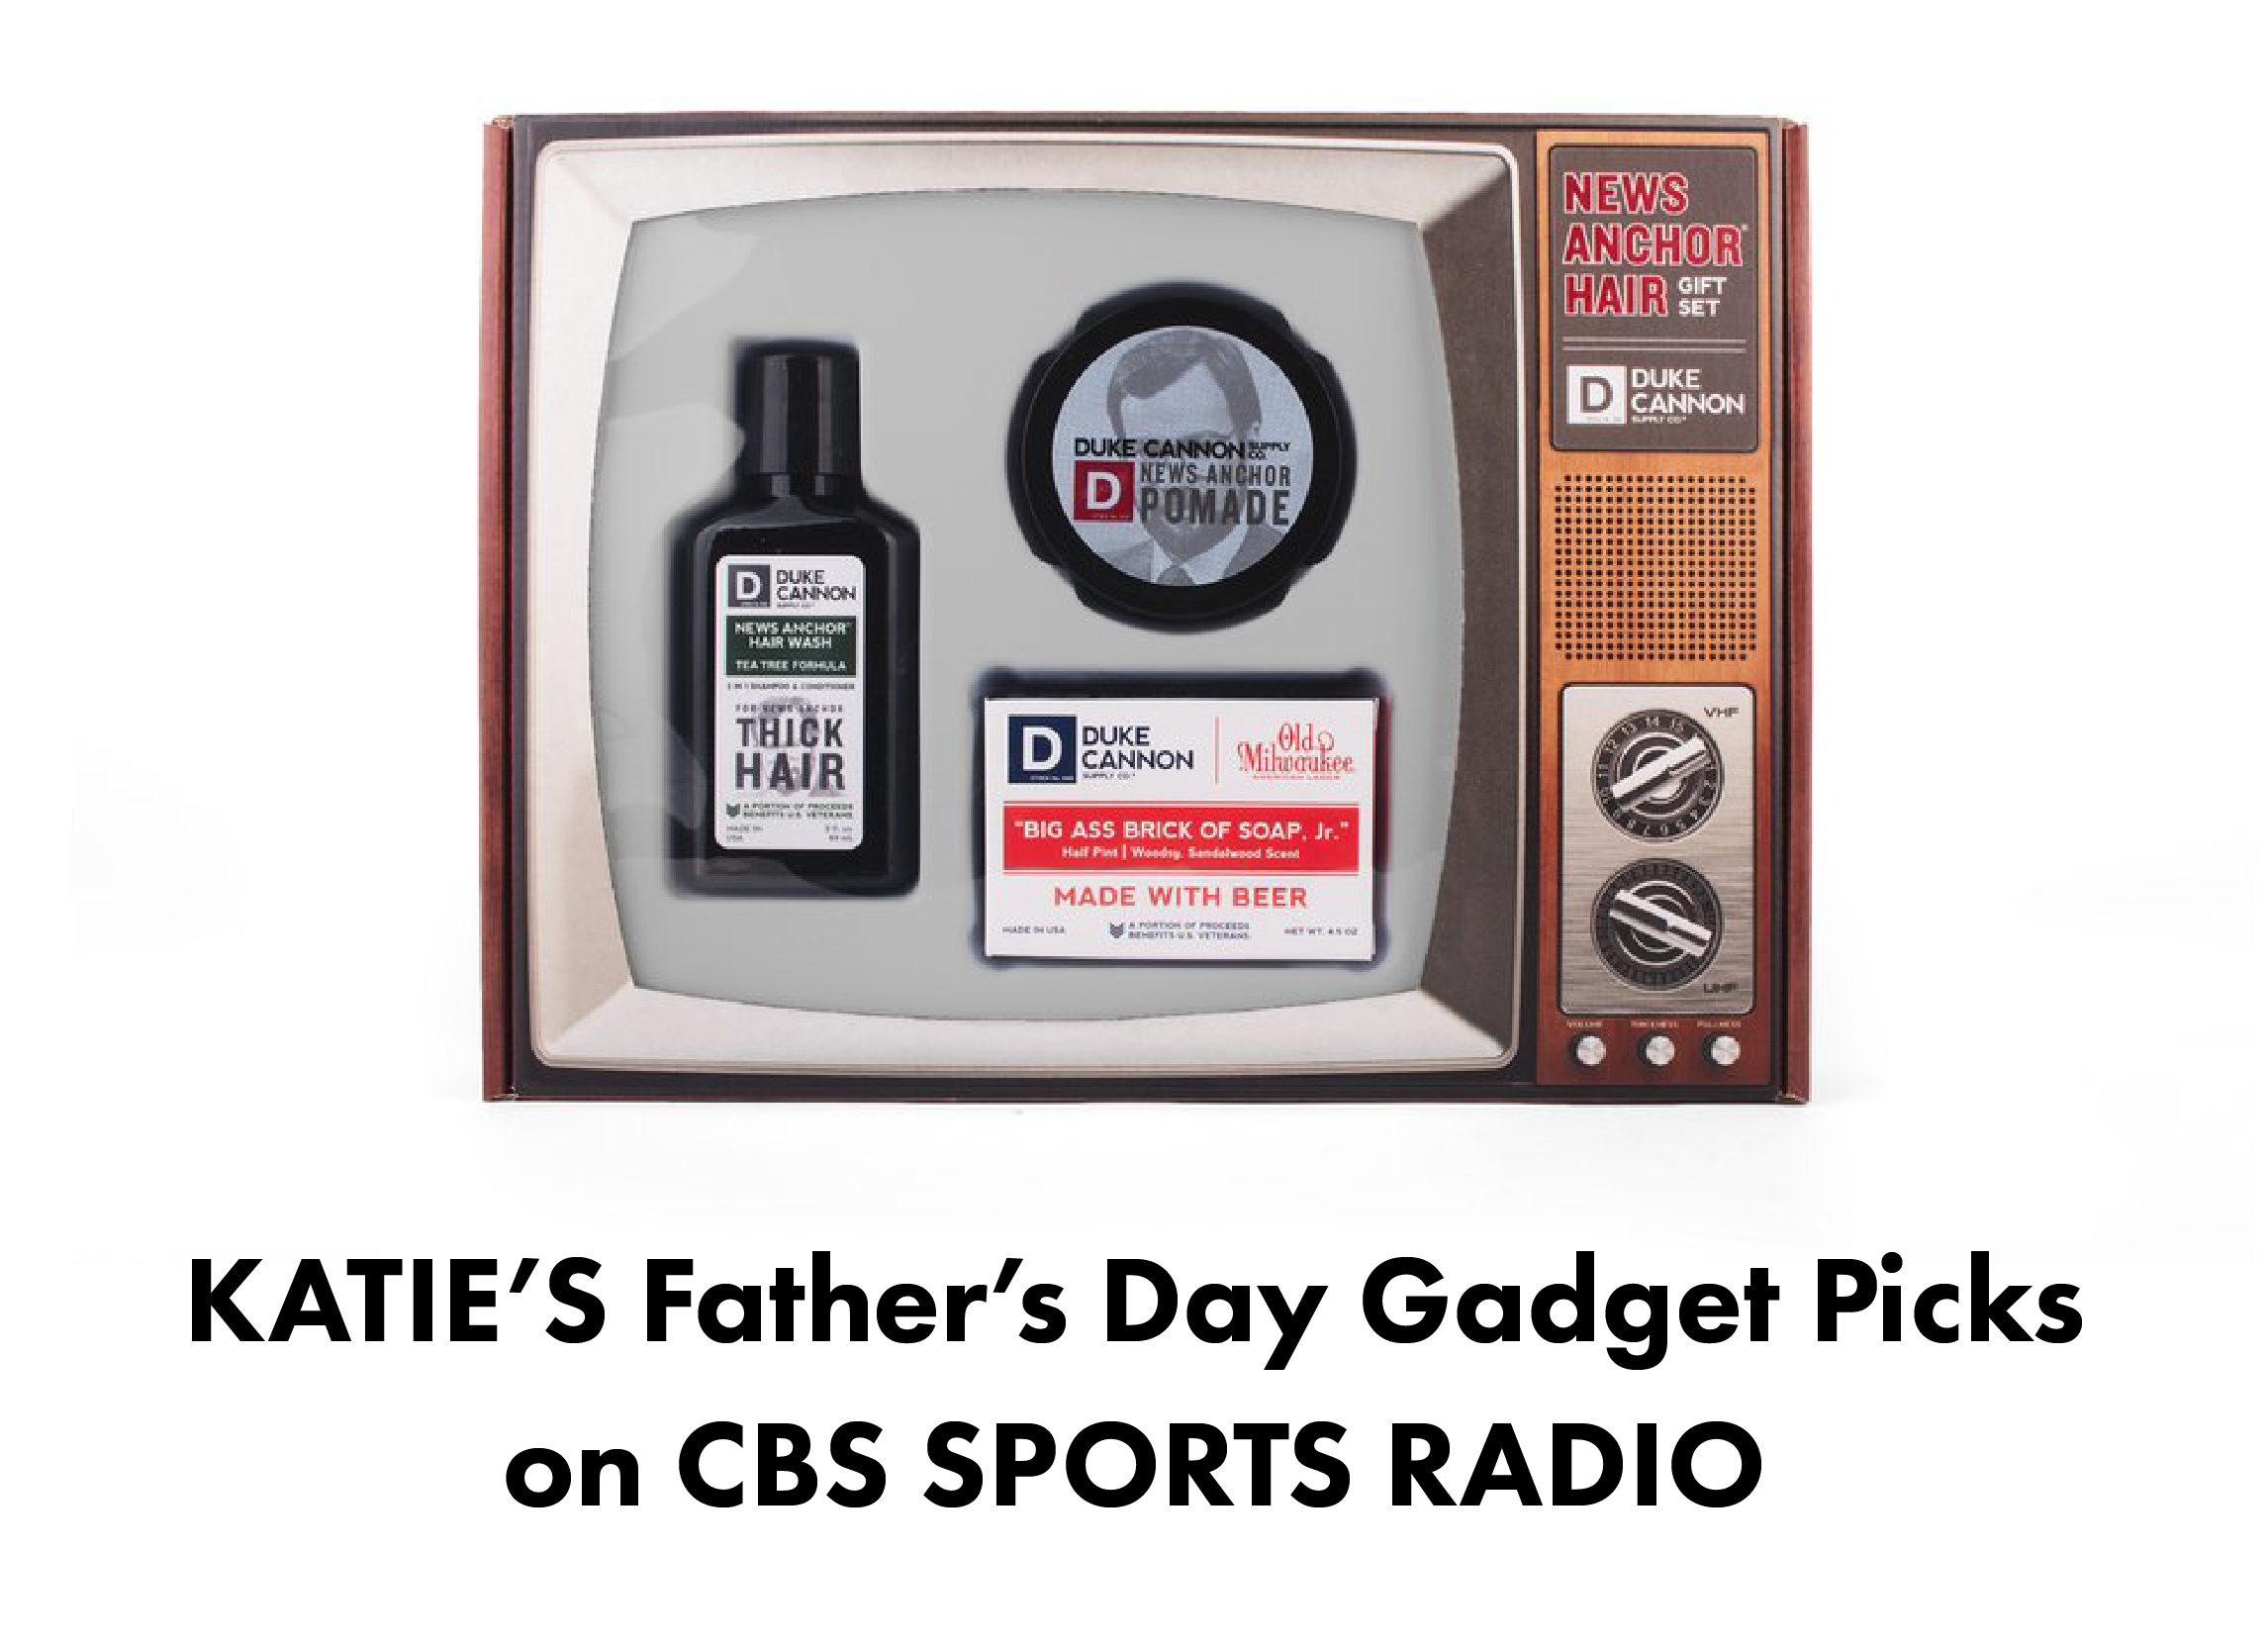 Katie's Top Father's Day Gadgets Featured on the DA Show - CBS Sports Radio